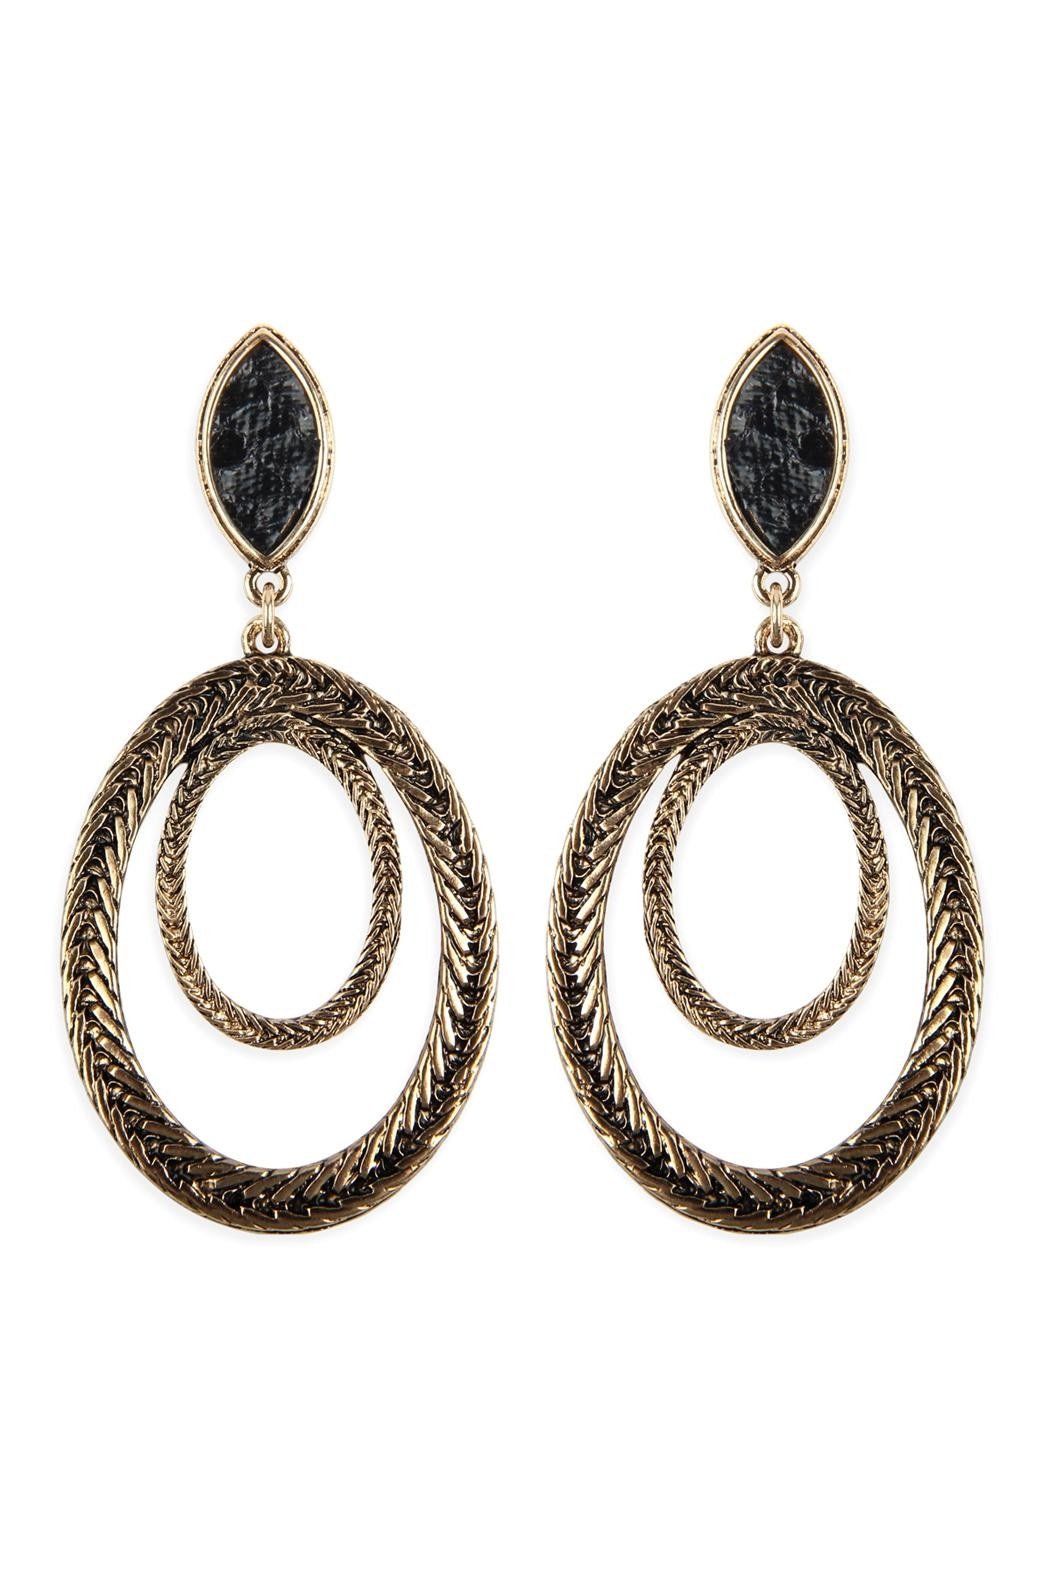 Riah Fashion Two-Layer-Oval-Textured-Post-Dangle-Earrings - Main Image